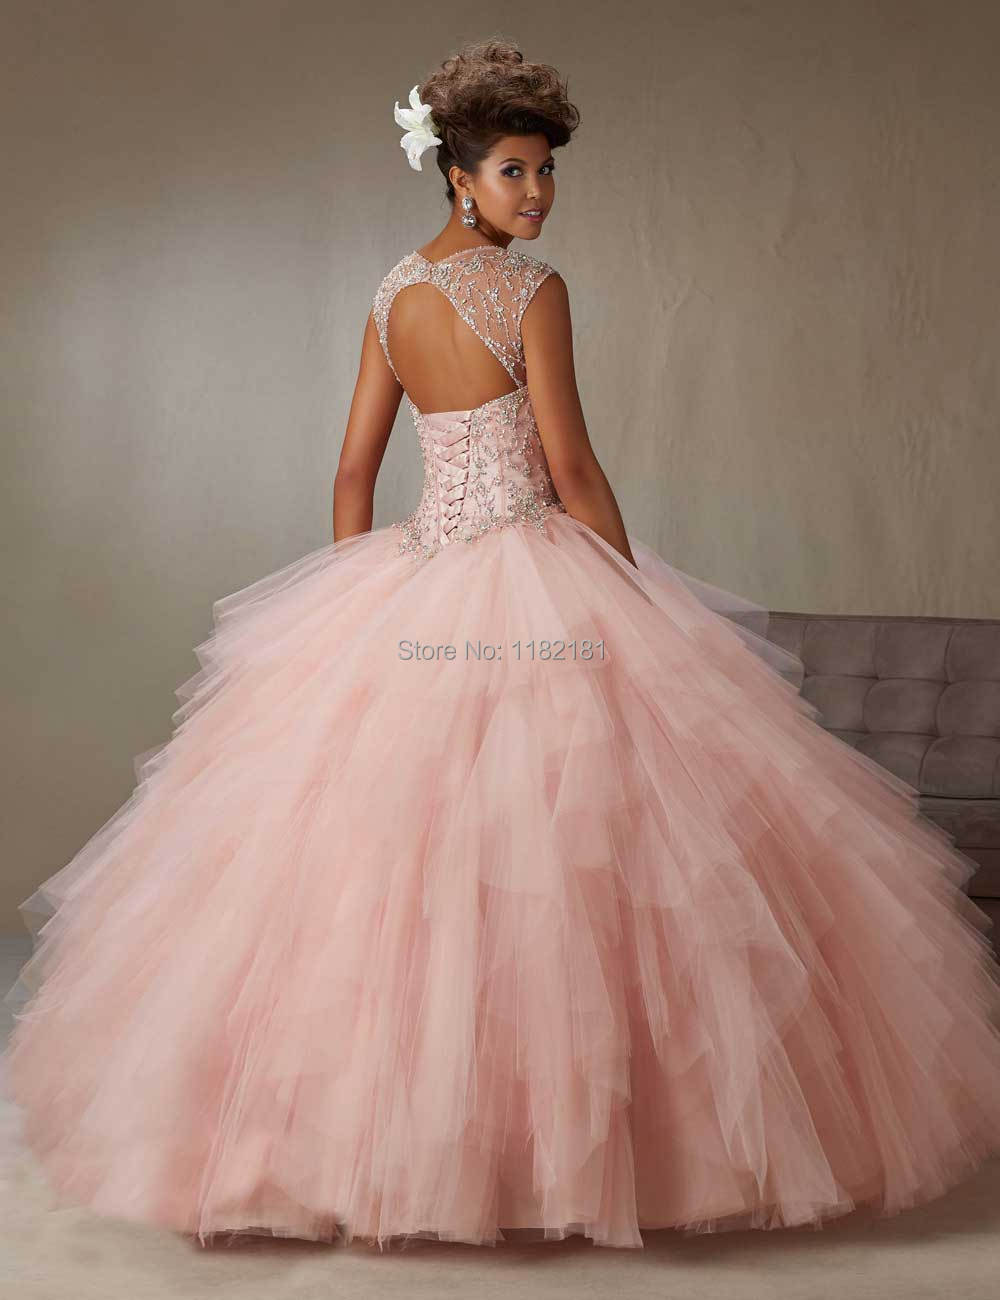 5df9ceae2d1 Removable Strap Corset Bodice Ball Gown Girls Quinceanera Dress Pink  Sweetheart Cheap Sweet 16 Party Gowns 2016-in Quinceanera Dresses from  Weddings ...